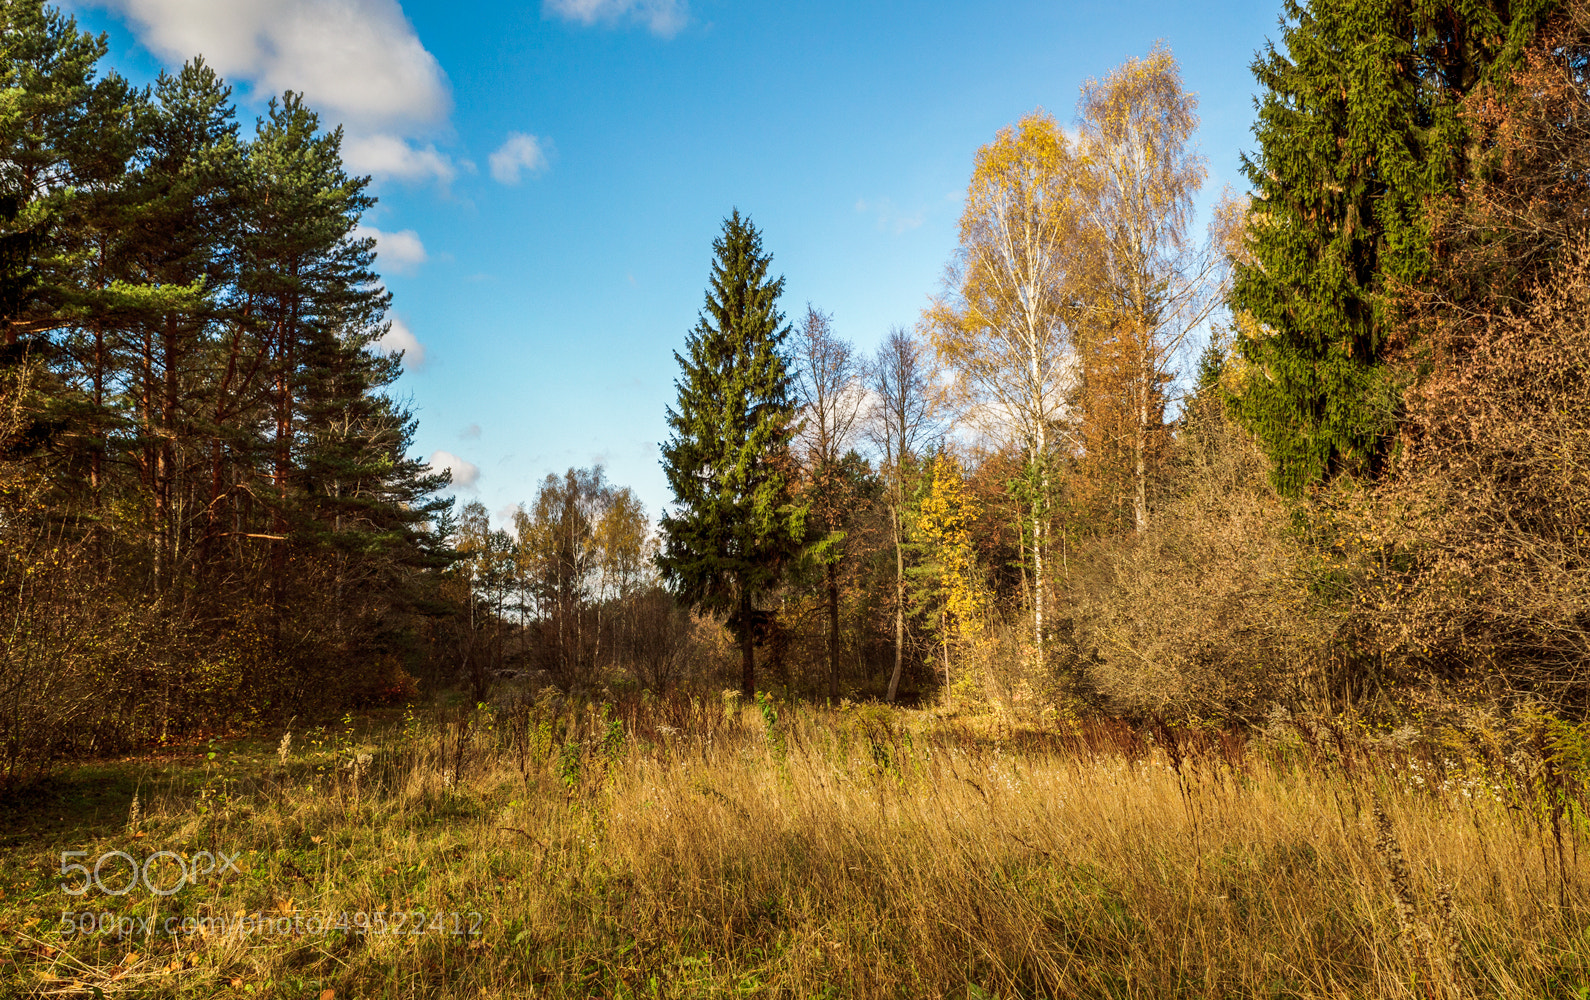 Photograph Autumn scenery in forest by Norbert Durko on 500px